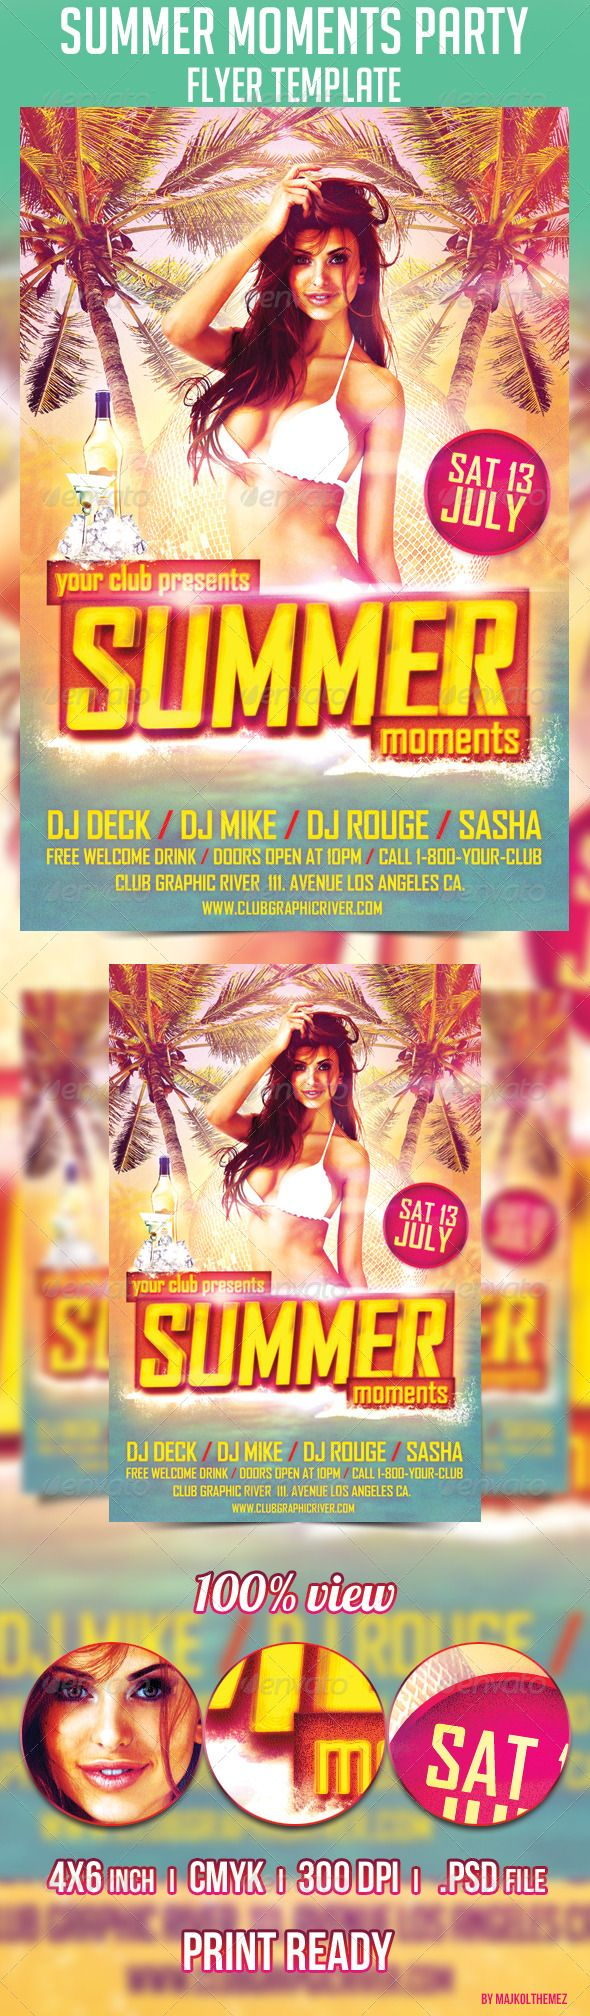 17 best images about flyer templates psd fresh summer moments party flyer template